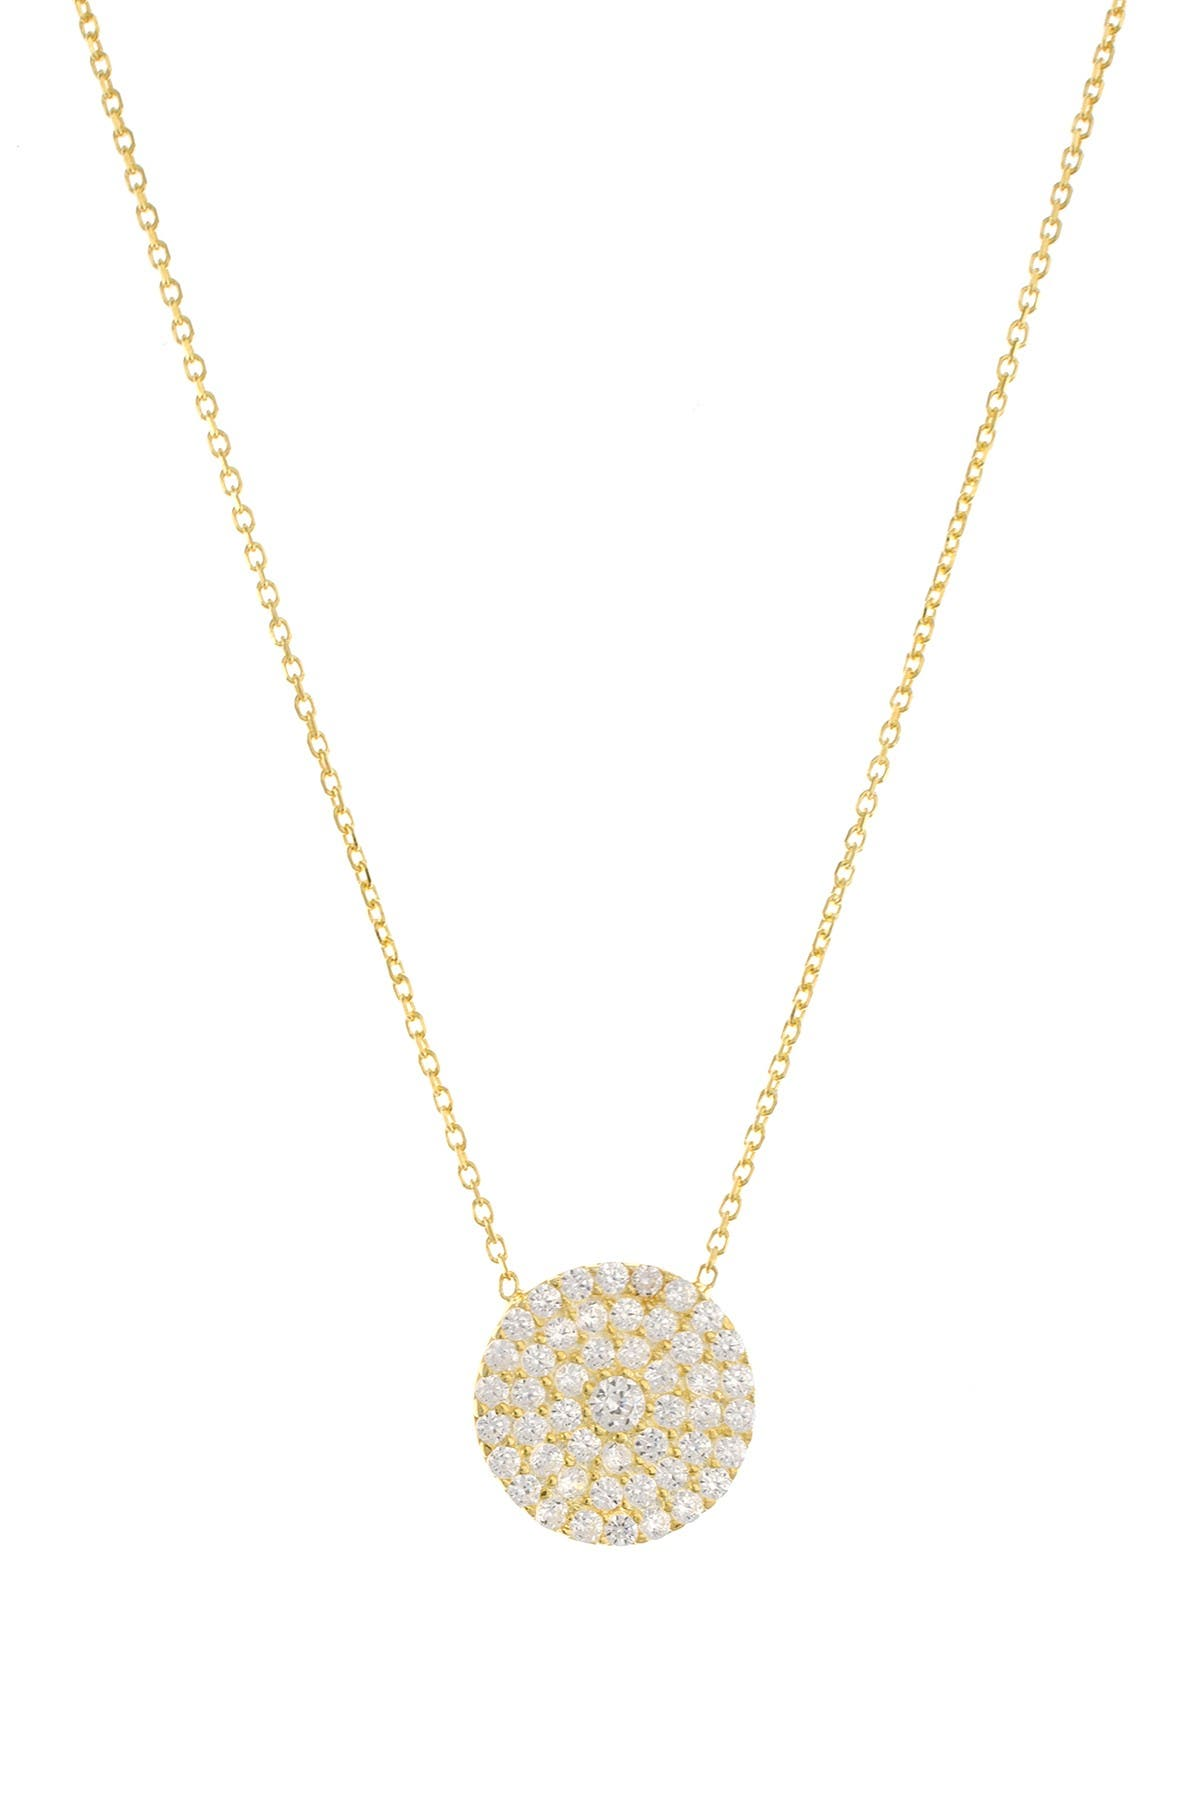 Image of CZ By Kenneth Jay Lane CZ Pave Disc Necklace